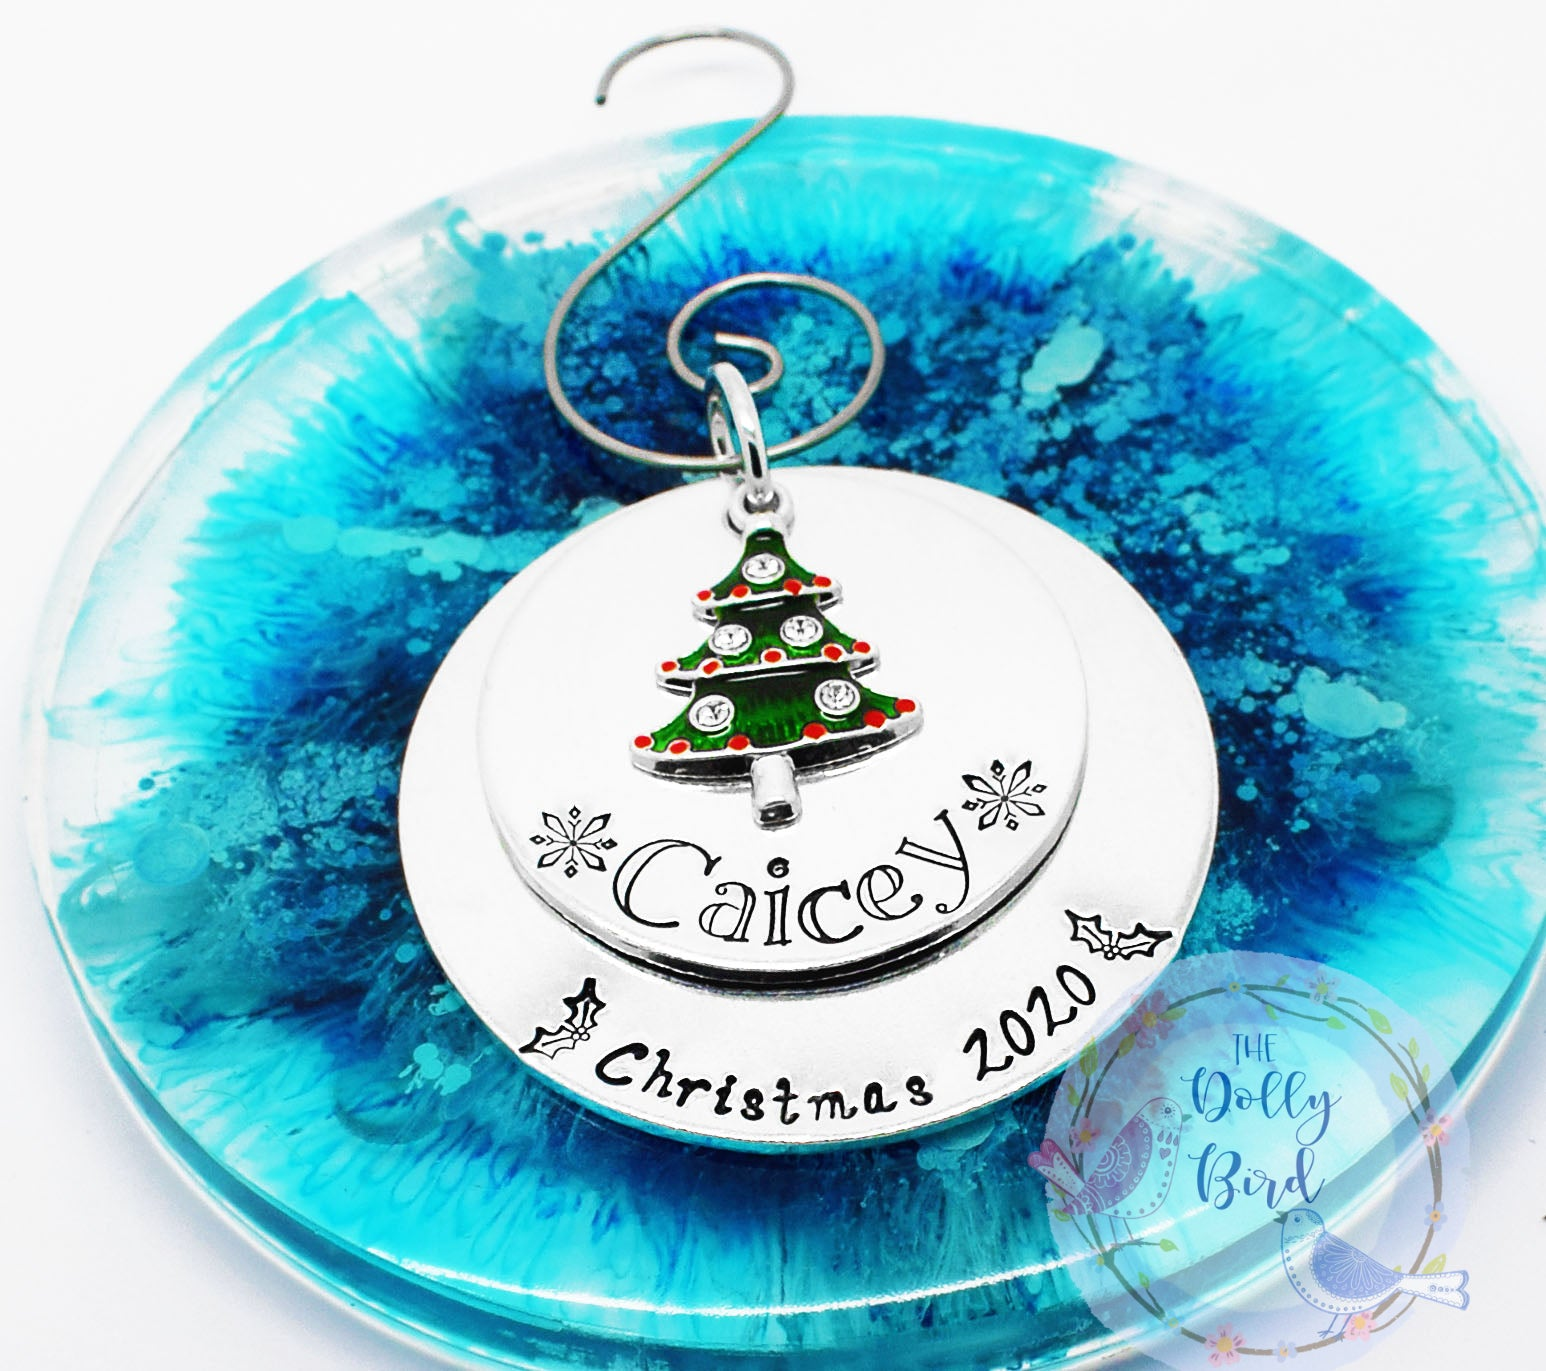 Personalised Christmas Tree Decoration, Personalised Christmas Ornament, Childs Tree Decoration, Christmas 2020 Tree Ornament, Xmas Gift